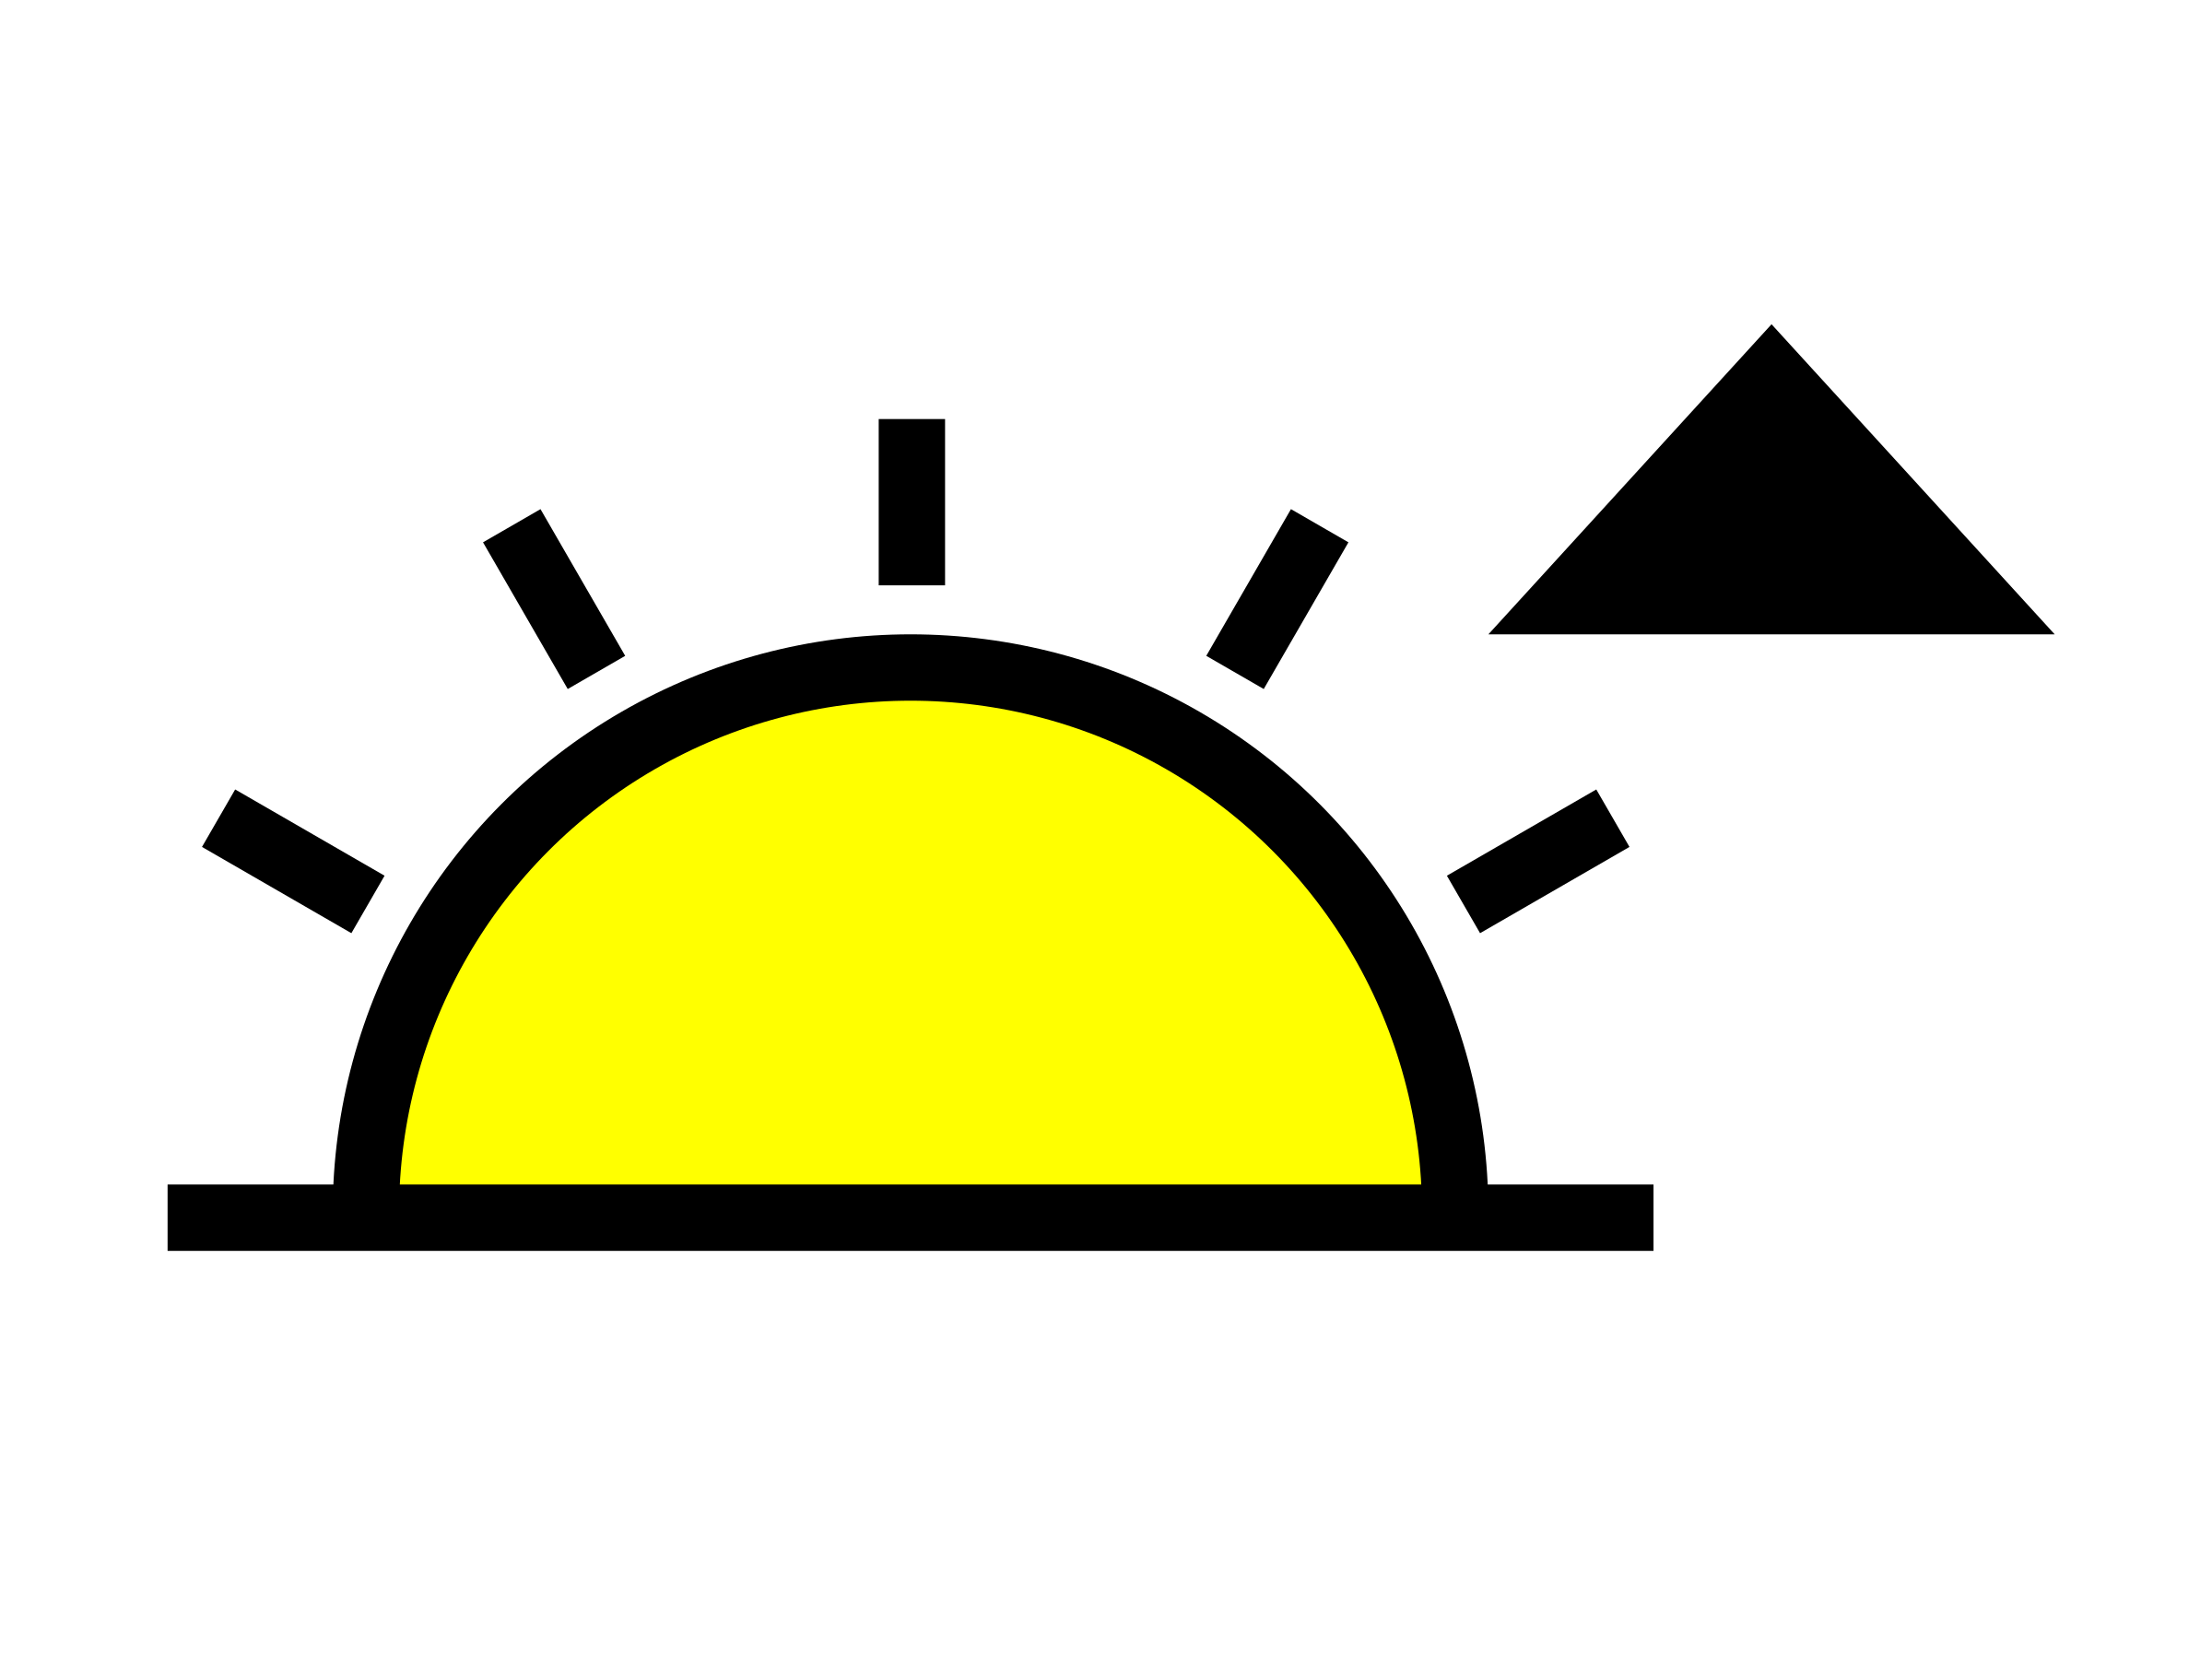 Sunrise icon png. Symbol icons free and